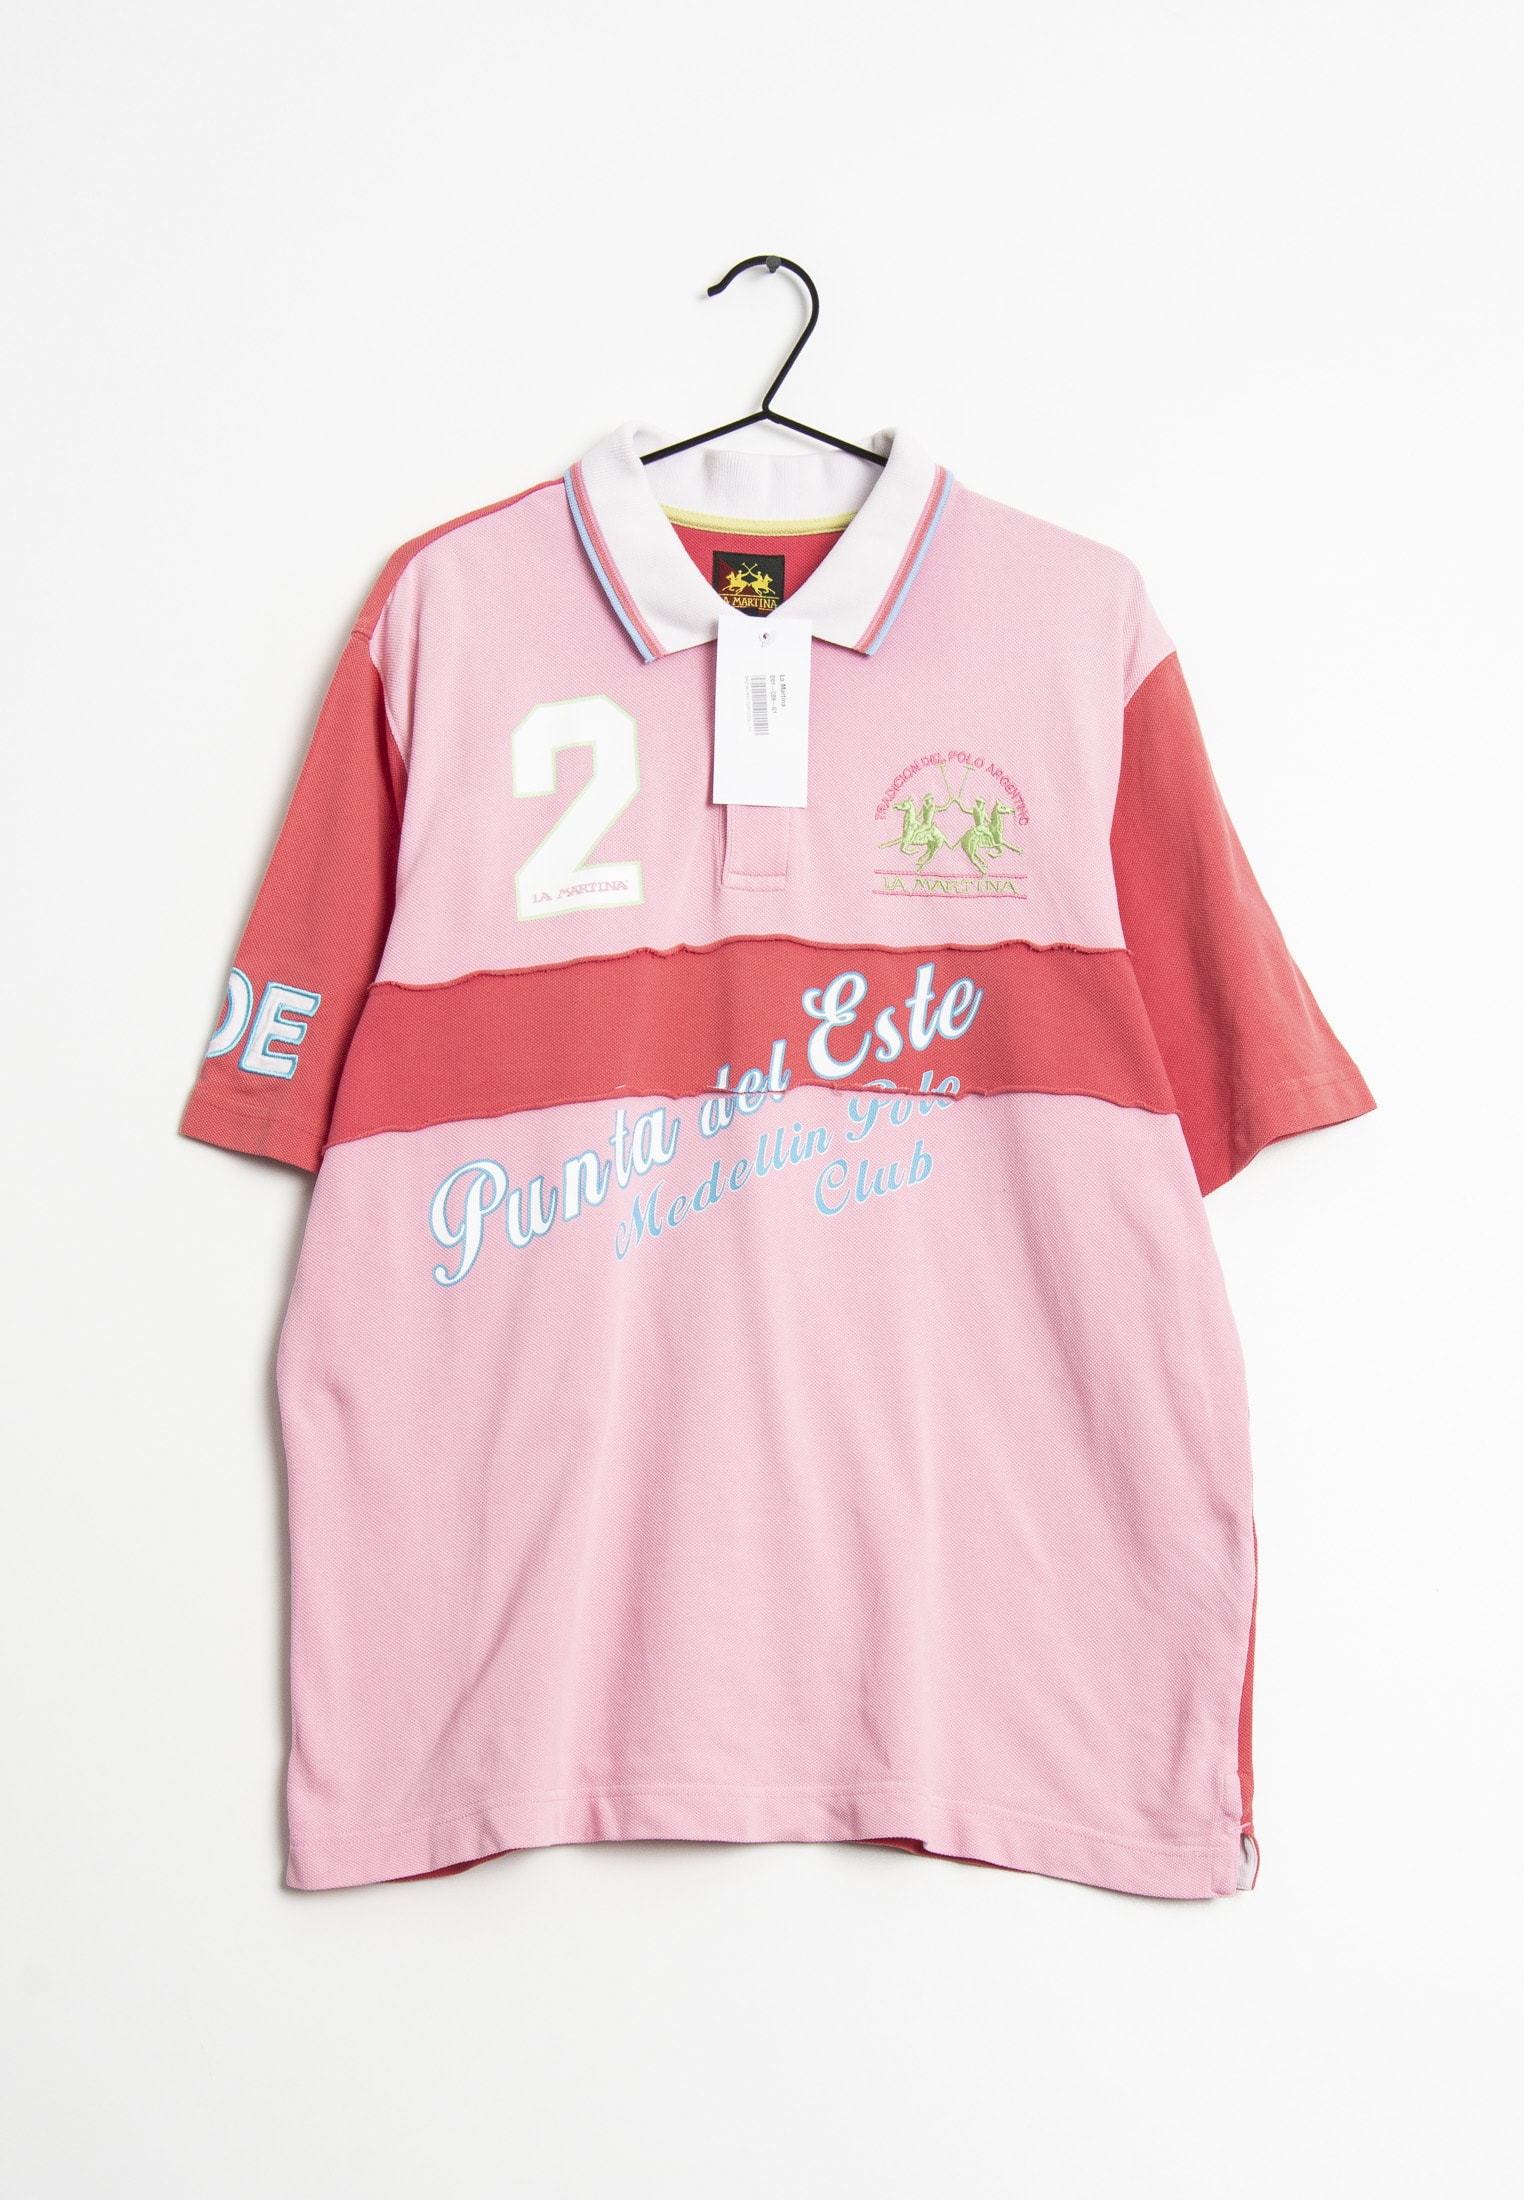 La Martina T-Shirt Pink Gr.XL